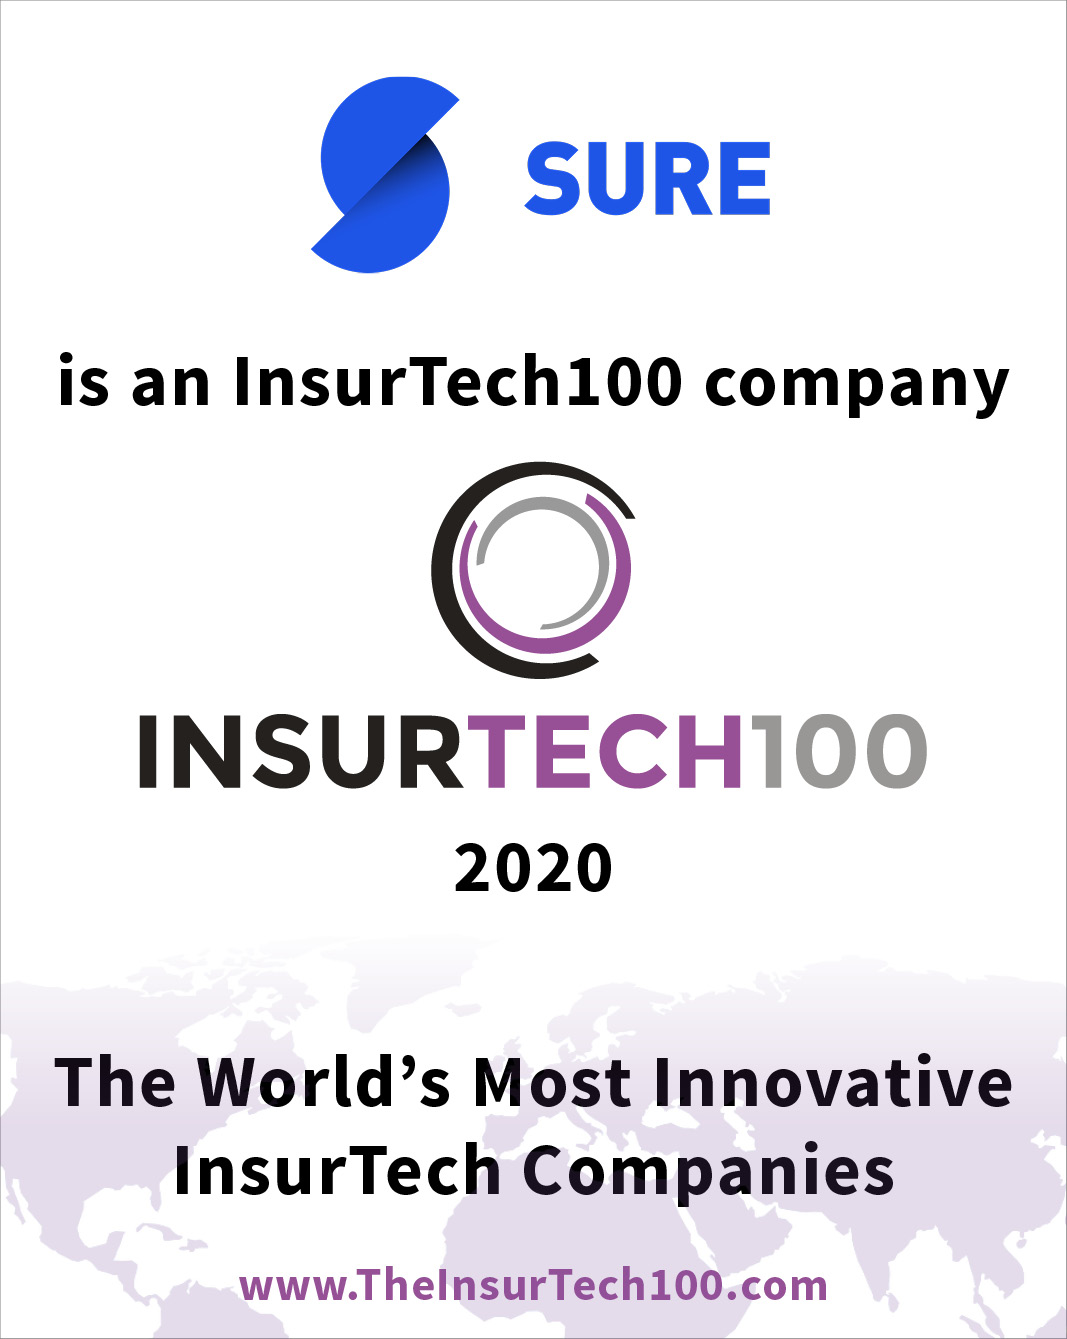 Sure is an InsurTech100 company